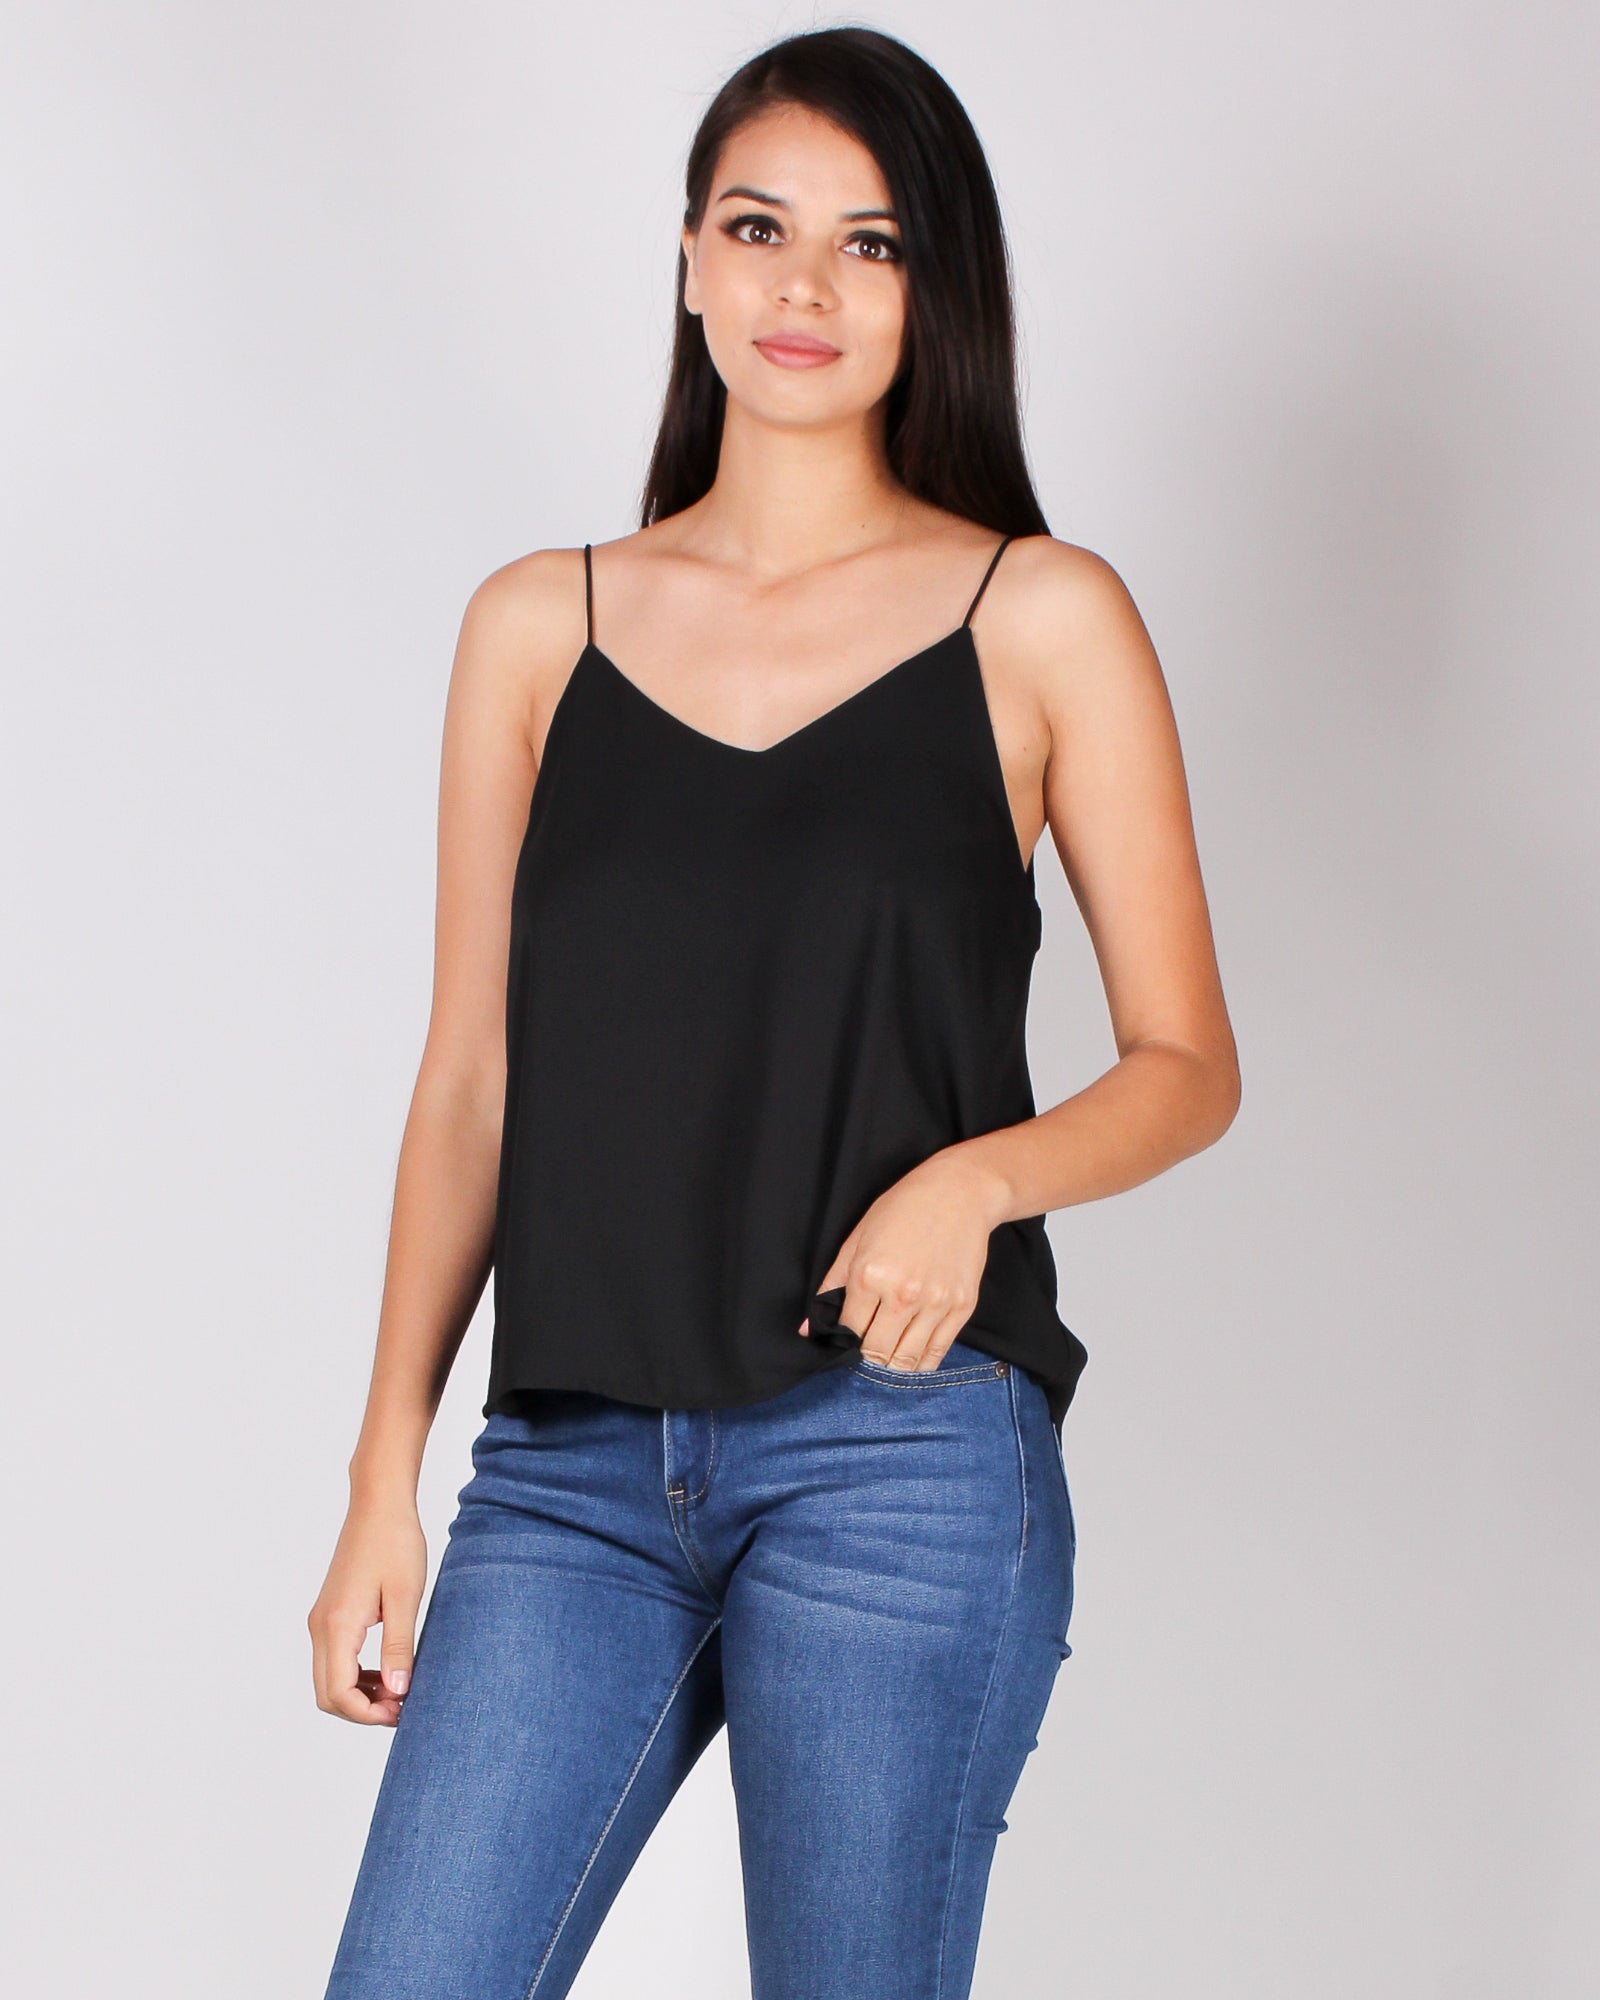 One Day at a Time Blouse (Black)